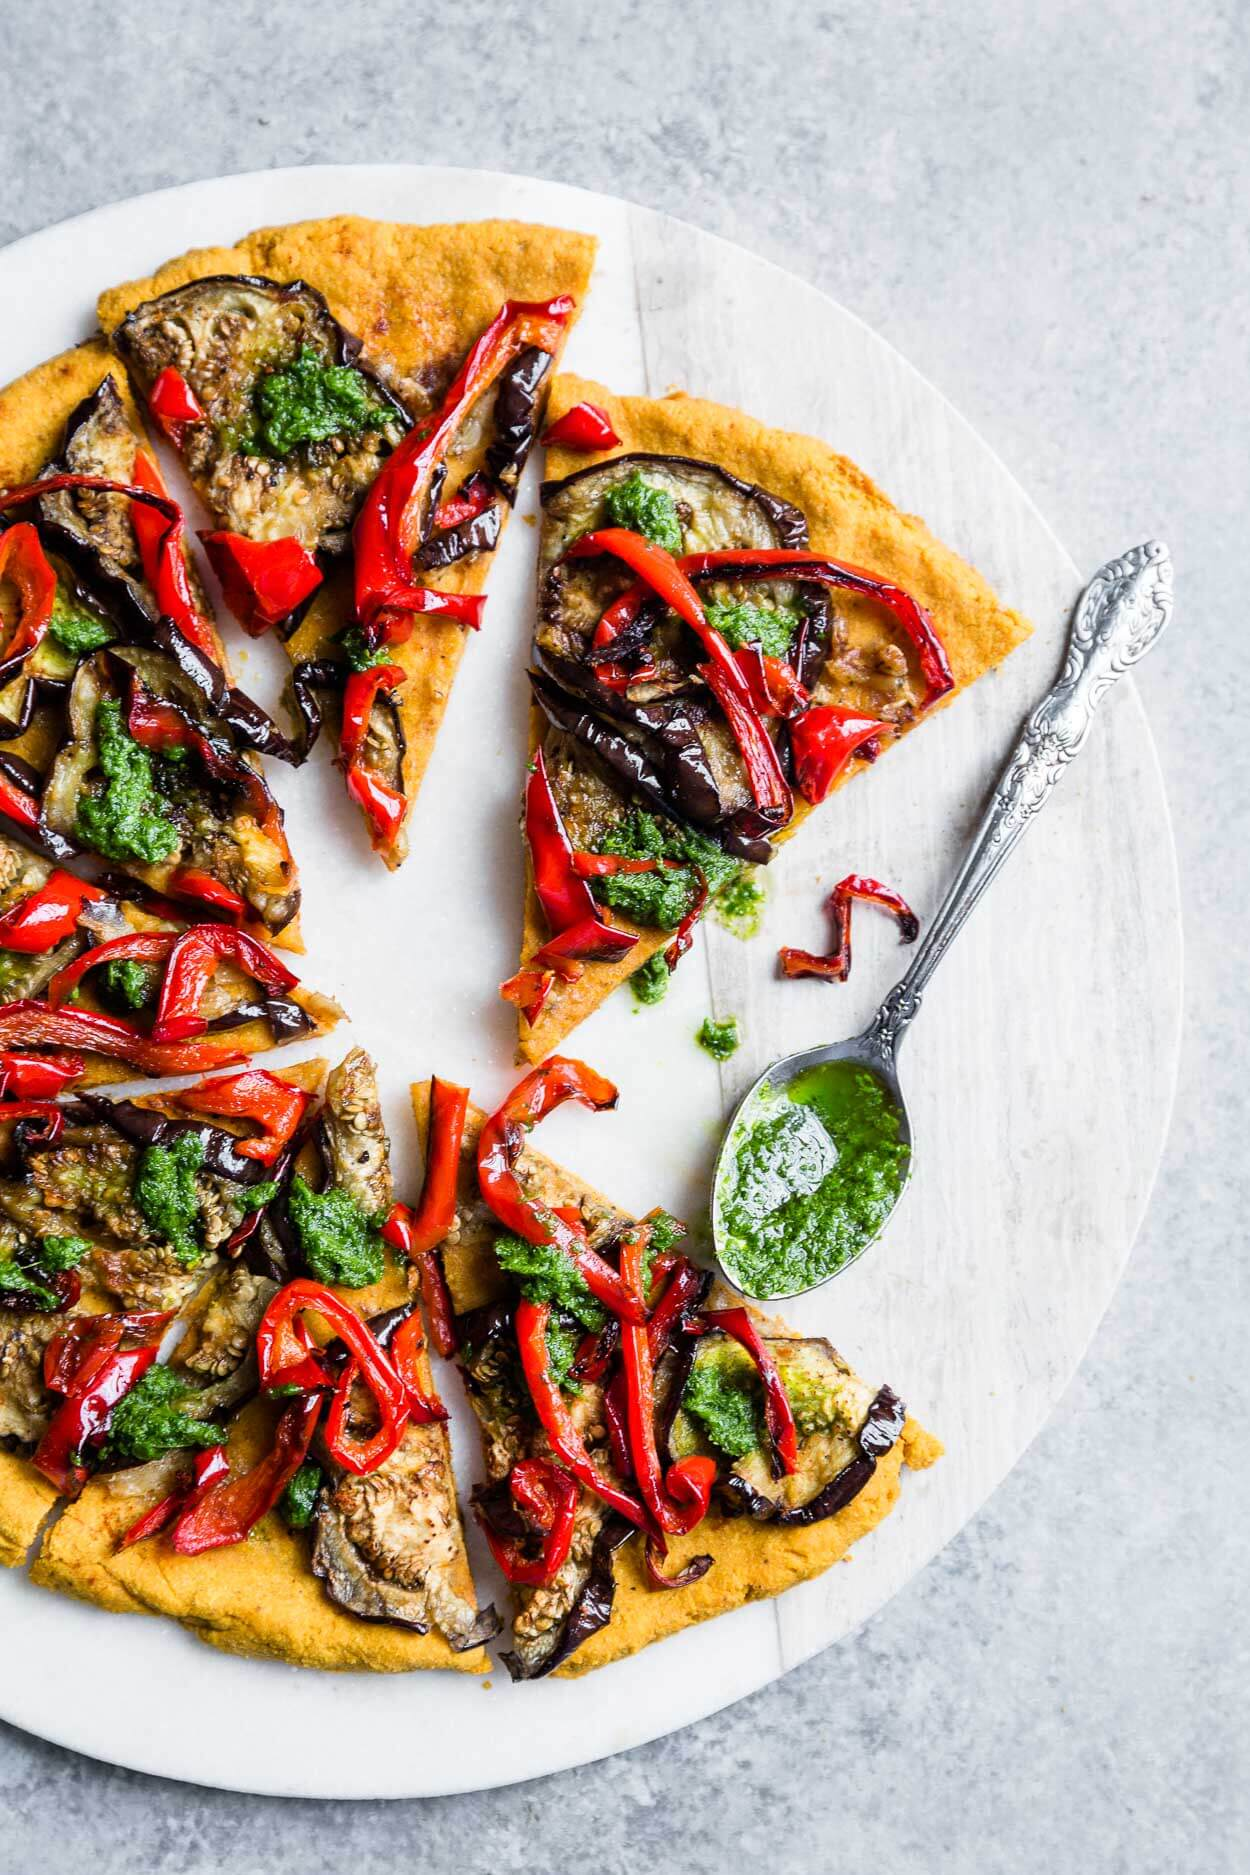 Vegan Sweet Potato Pizza with Roasted Eggplants